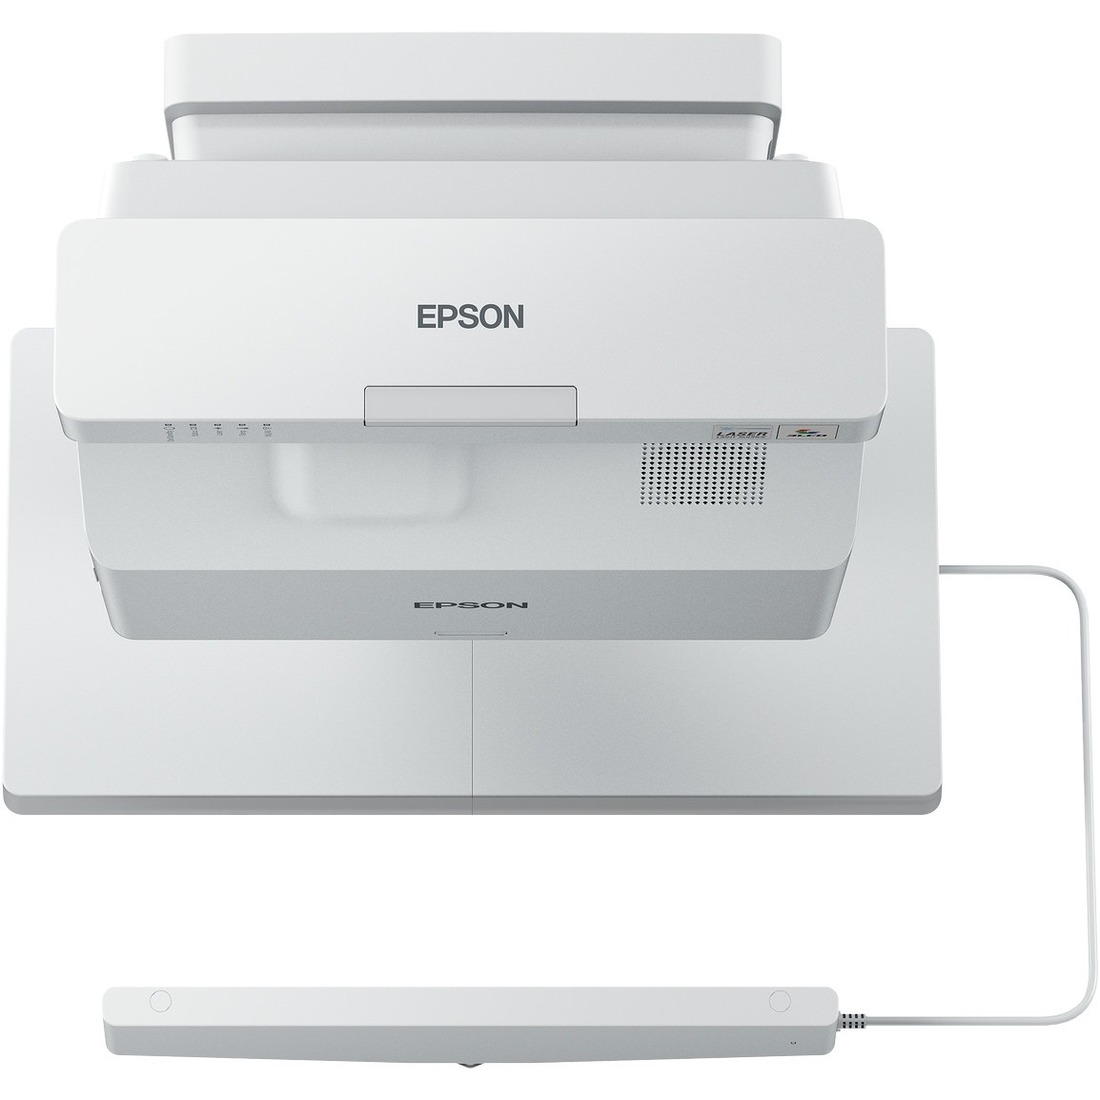 Epson BrightLink 735Fi Ultra Short Throw LCD Projector - 16:9 - White_subImage_1